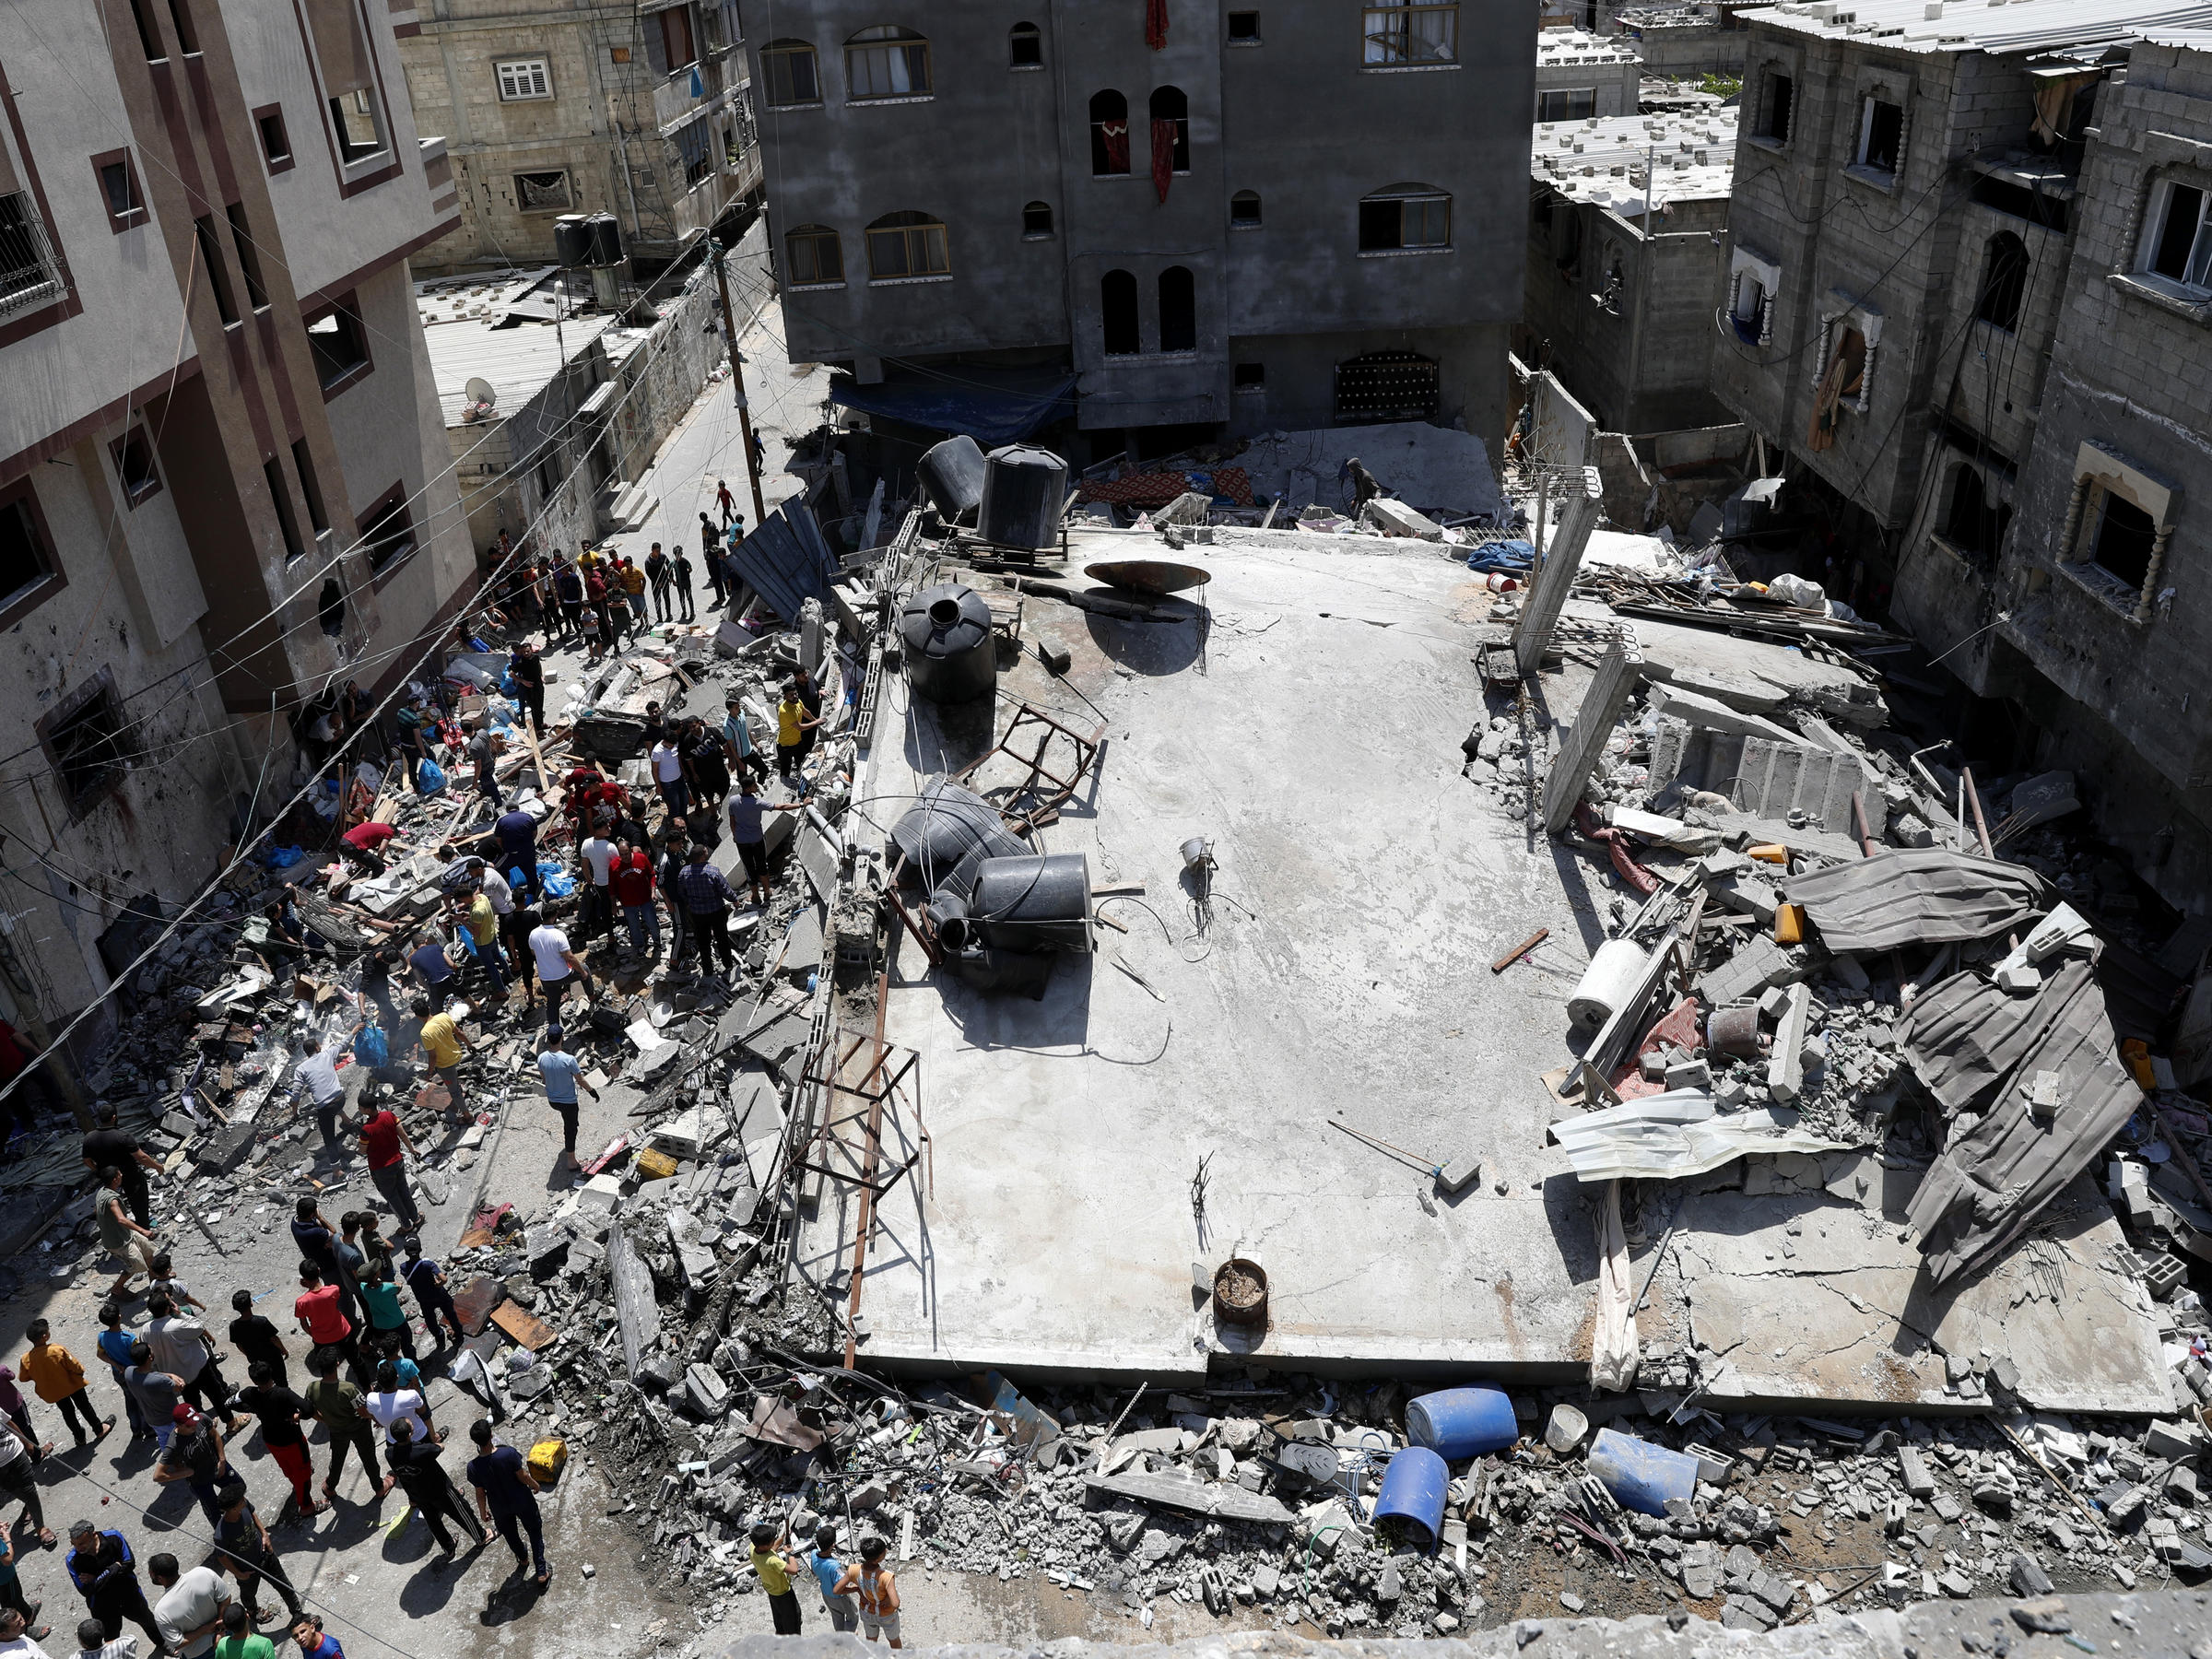 Israel And Hamas Agree To A Cease-fire In The Gaza Conflict | WPRL